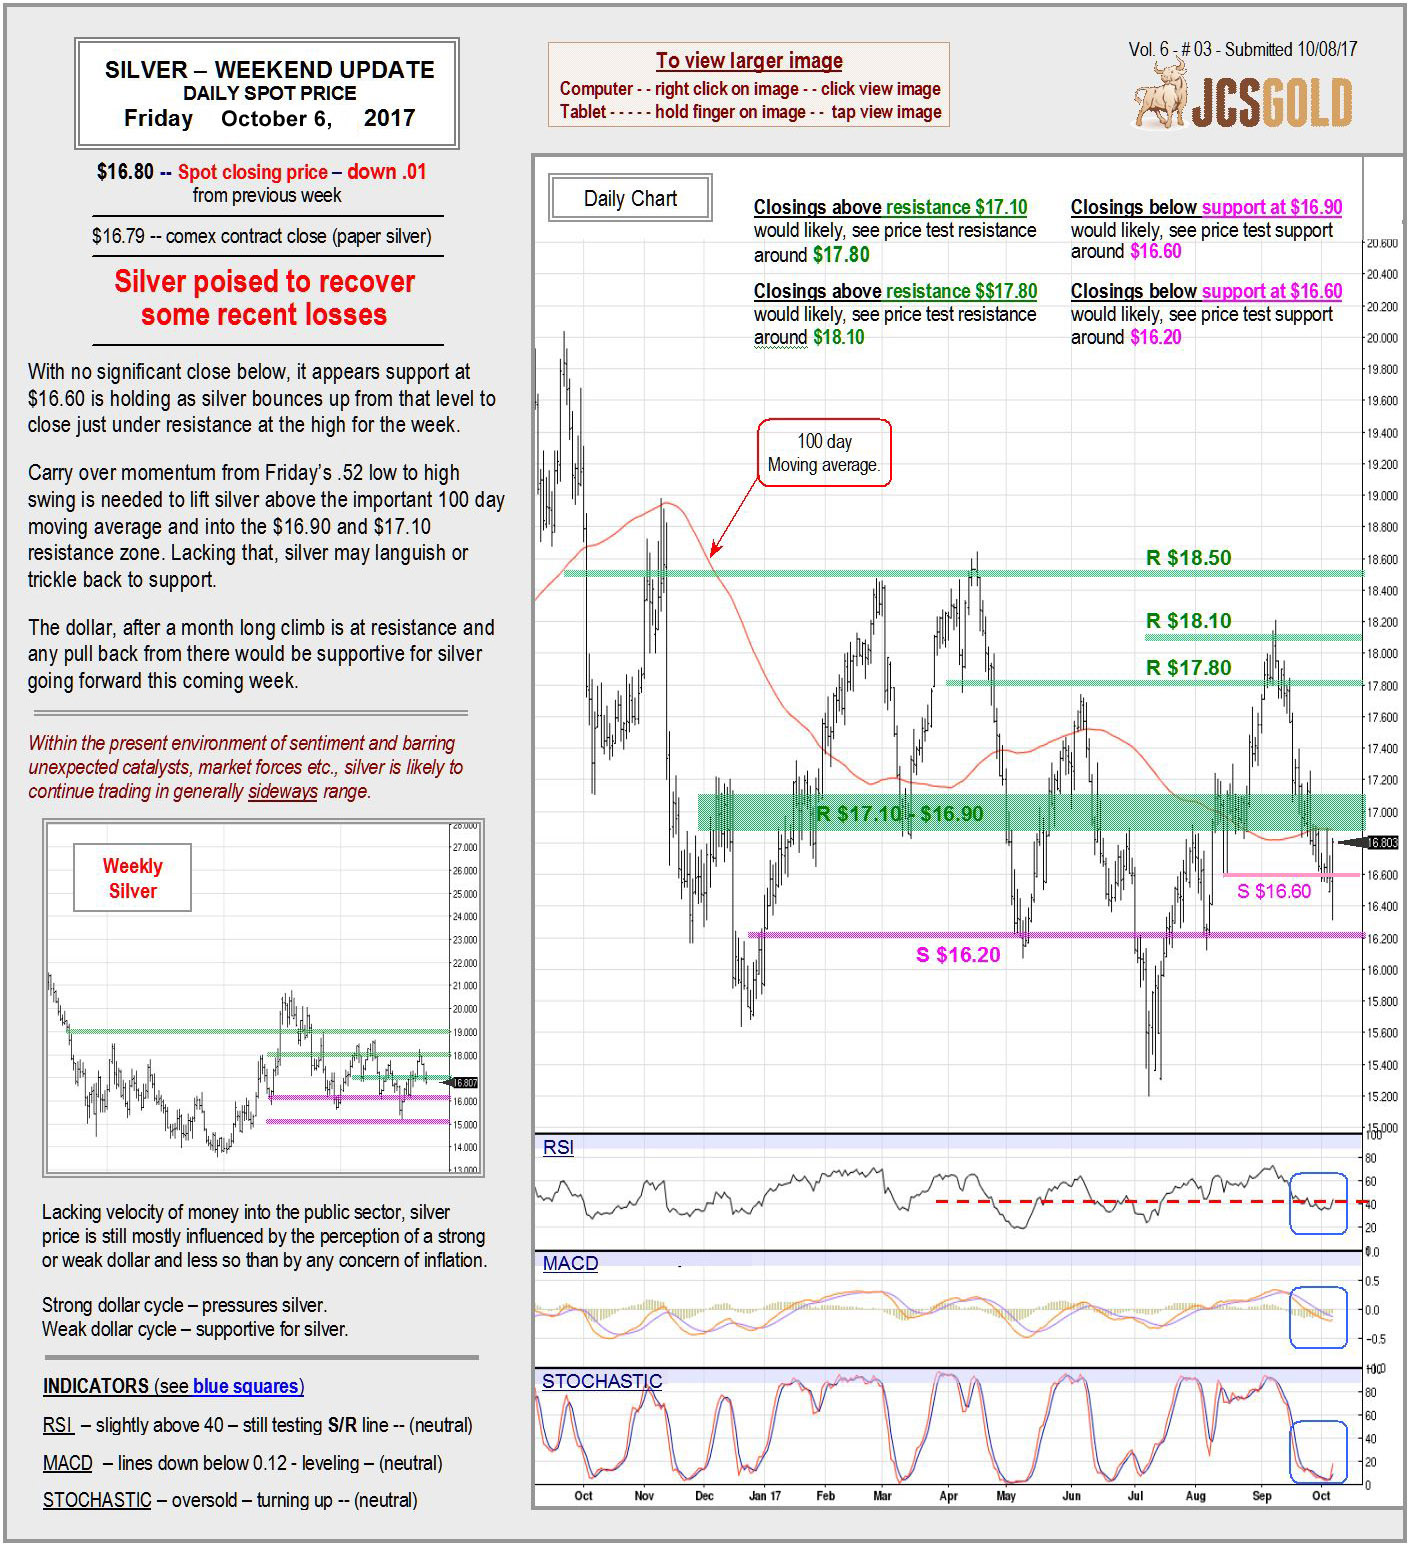 Oct. 6, 2017 chart & commentary